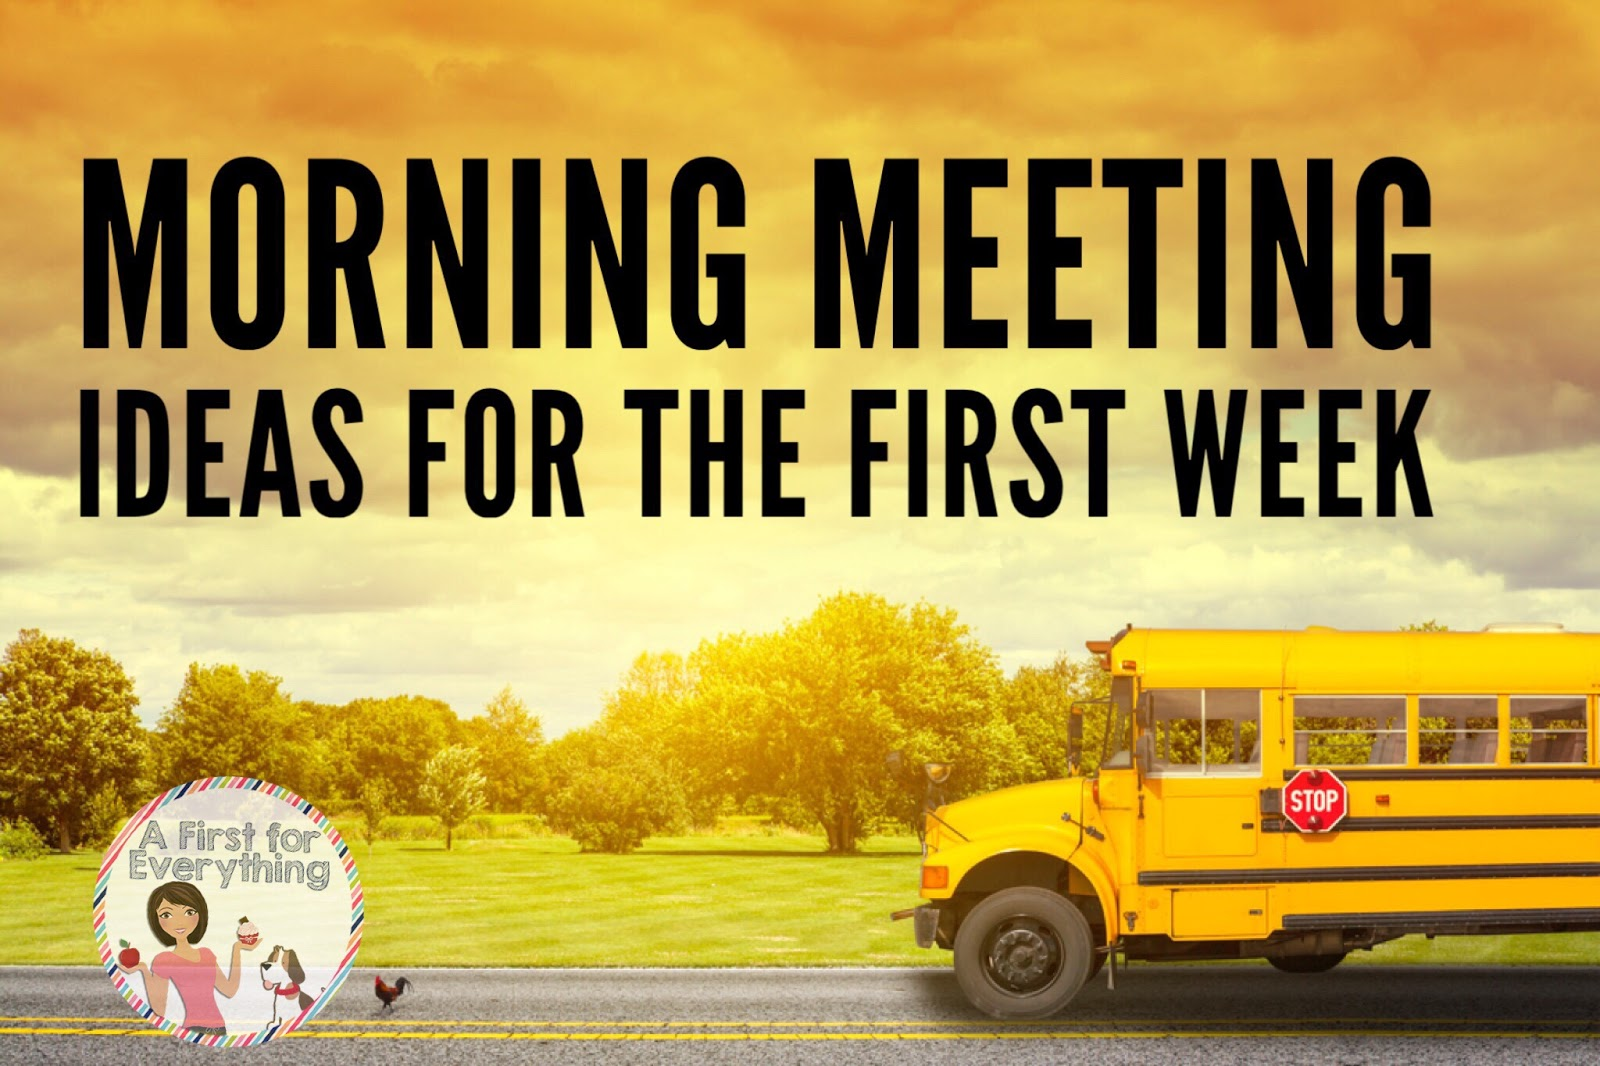 A first for everything august 2017 over 20 ideas for morning meeting for kindergarten and first grade the first week of school m4hsunfo